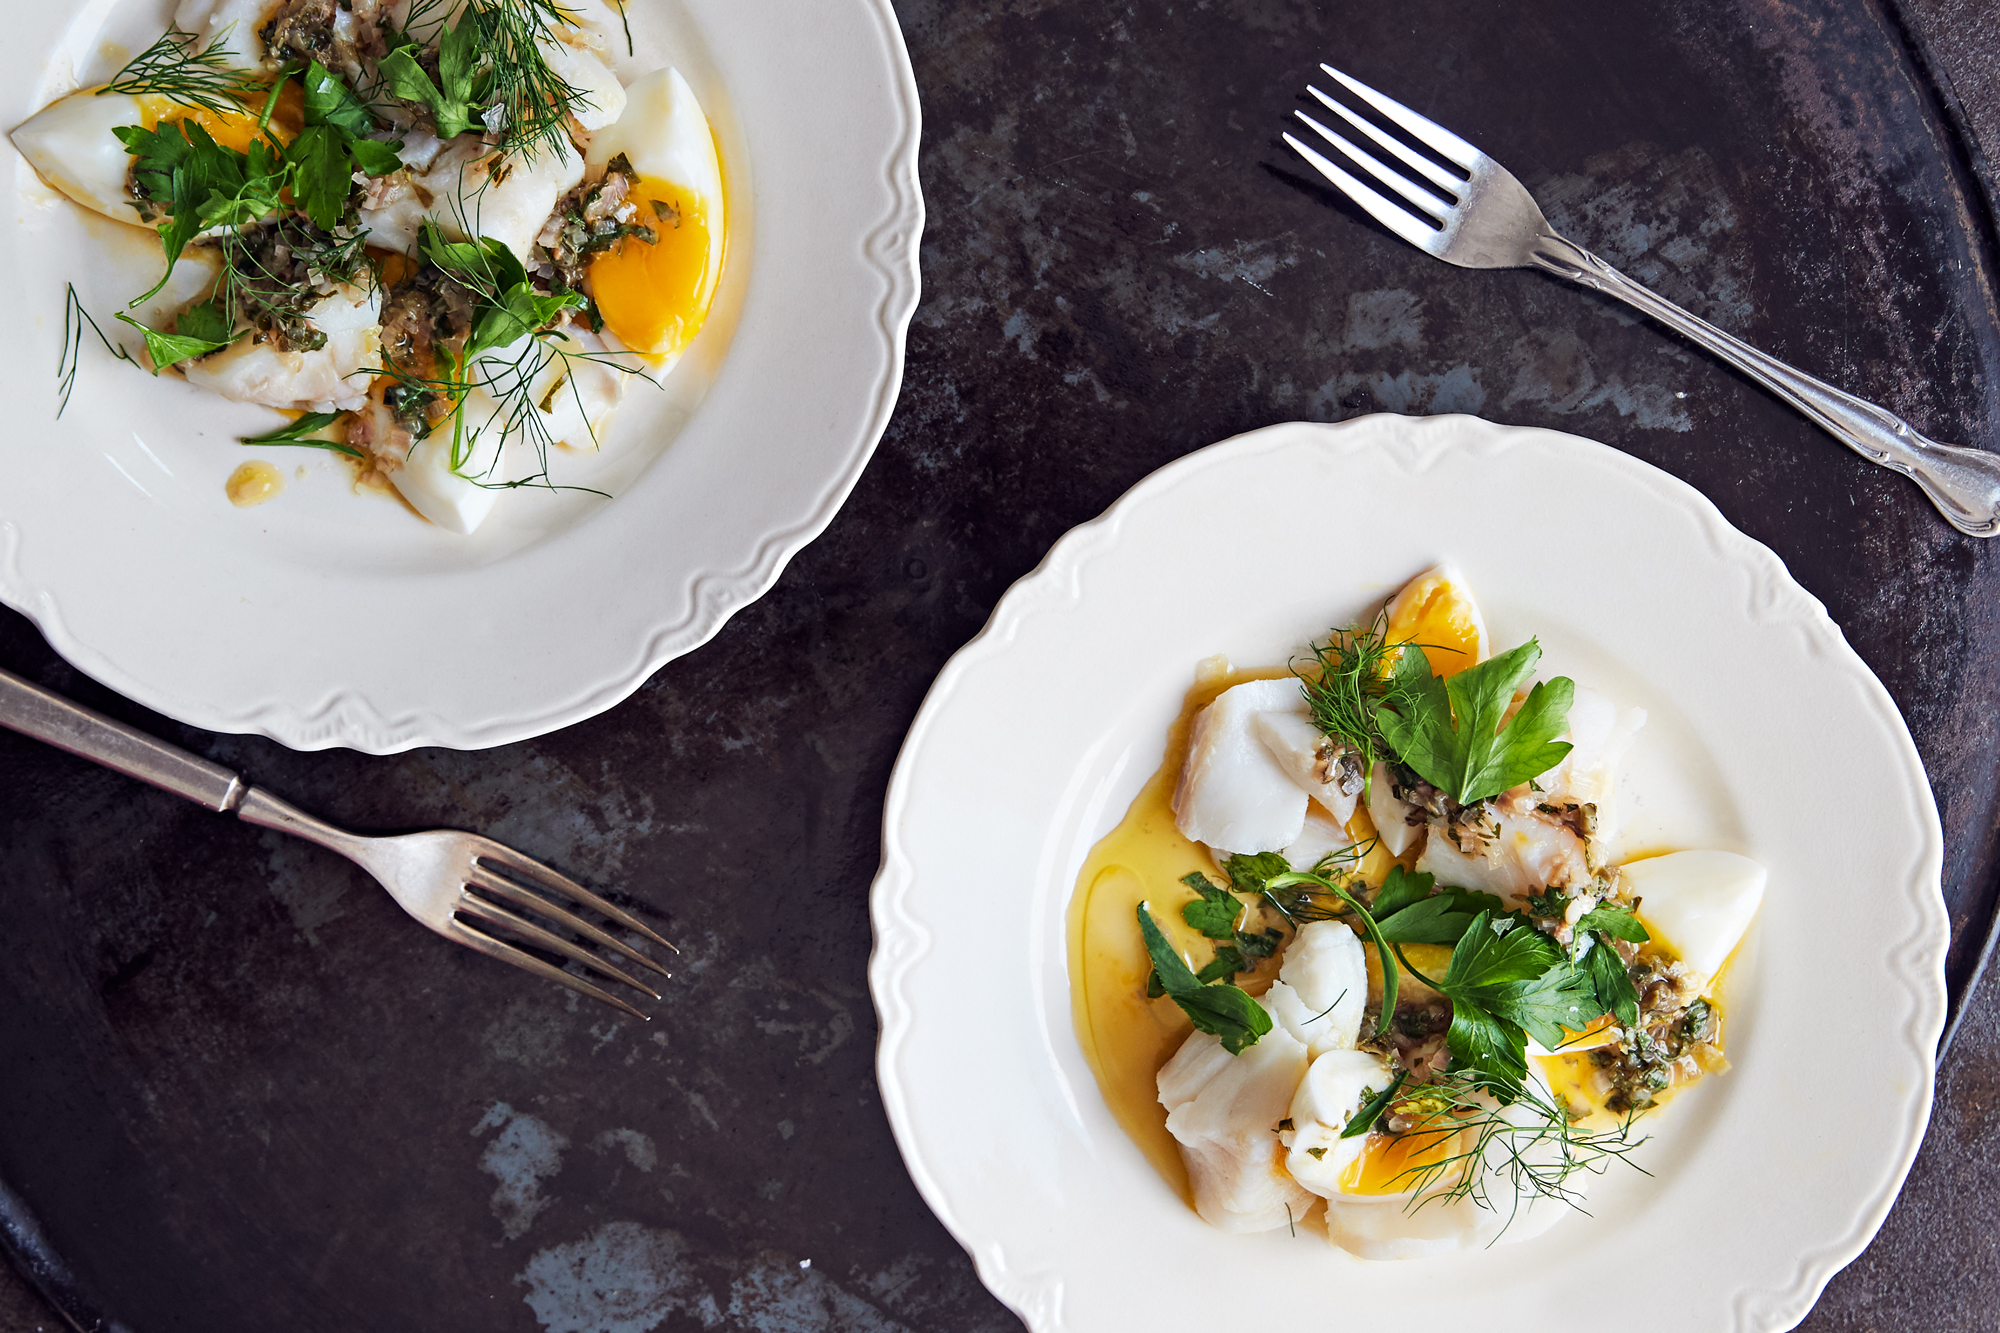 Warm Cod Salad with Tarragon Sauce and Boiled Eggs Recipe